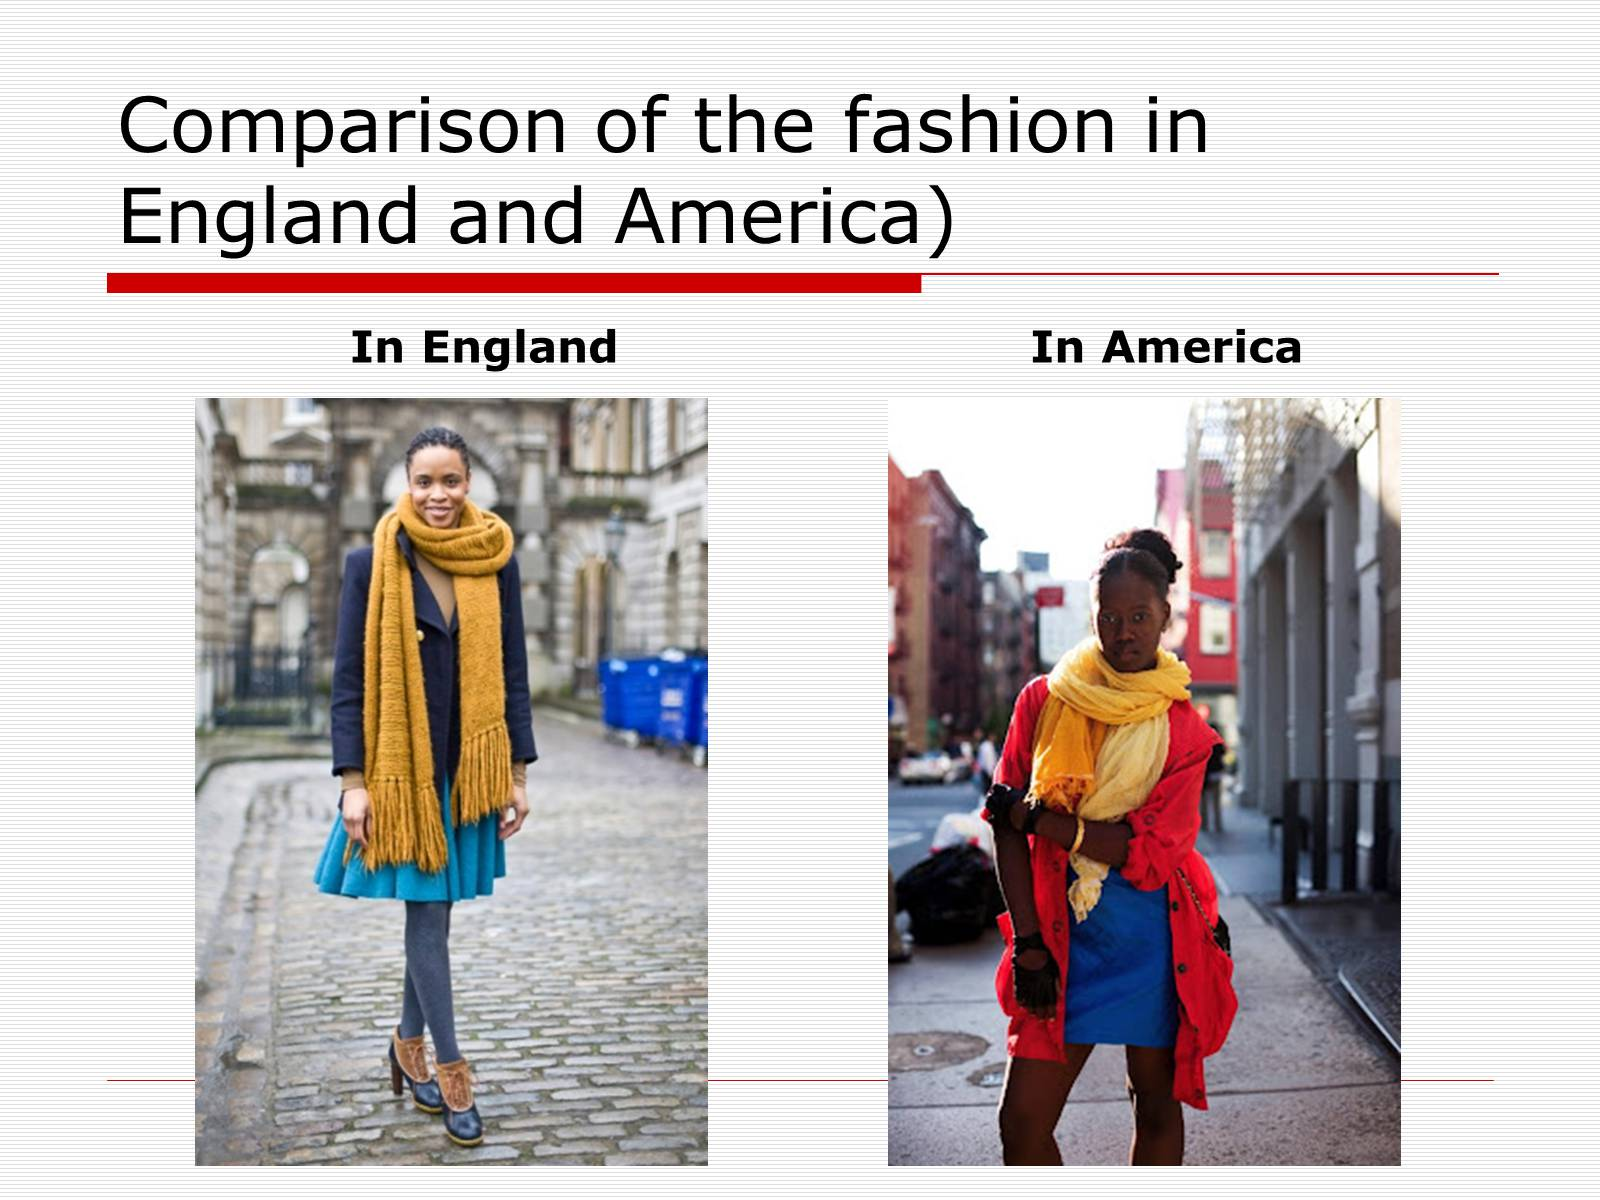 Презентація на тему «Comparison of the fashion in England and America» - Слайд #5